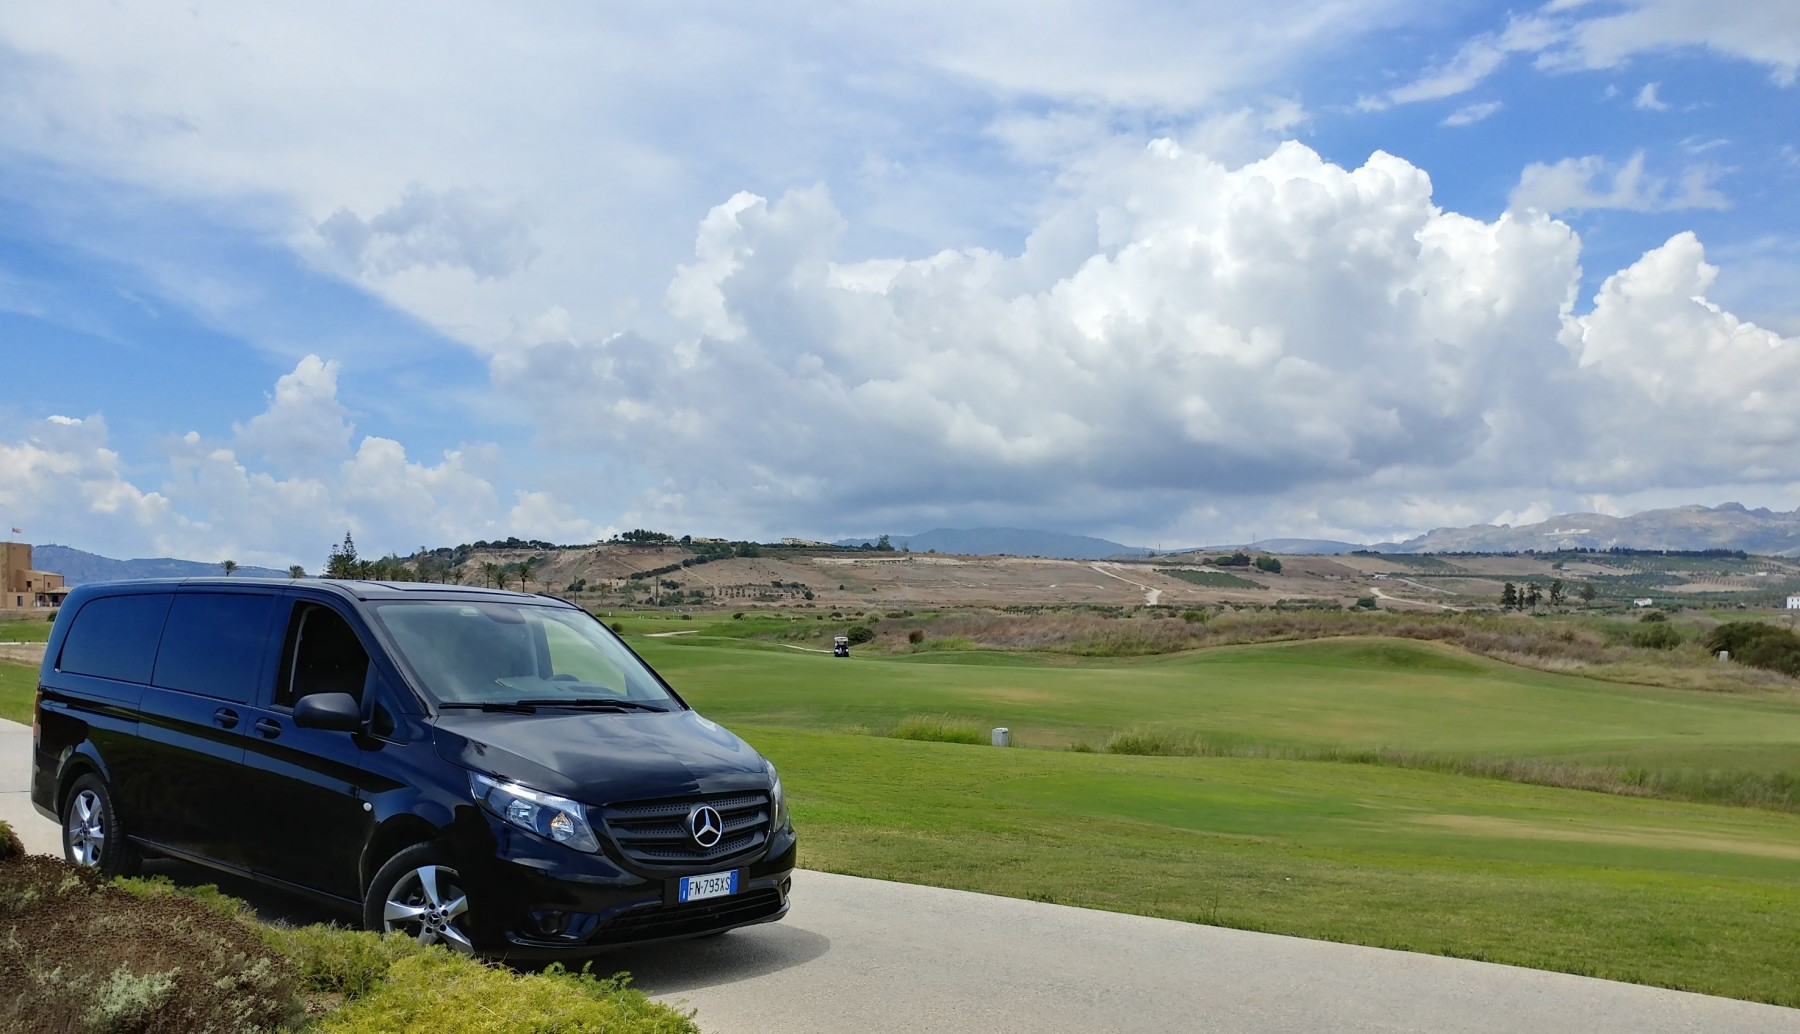 Playing golf in Sicily with Walk around sicily